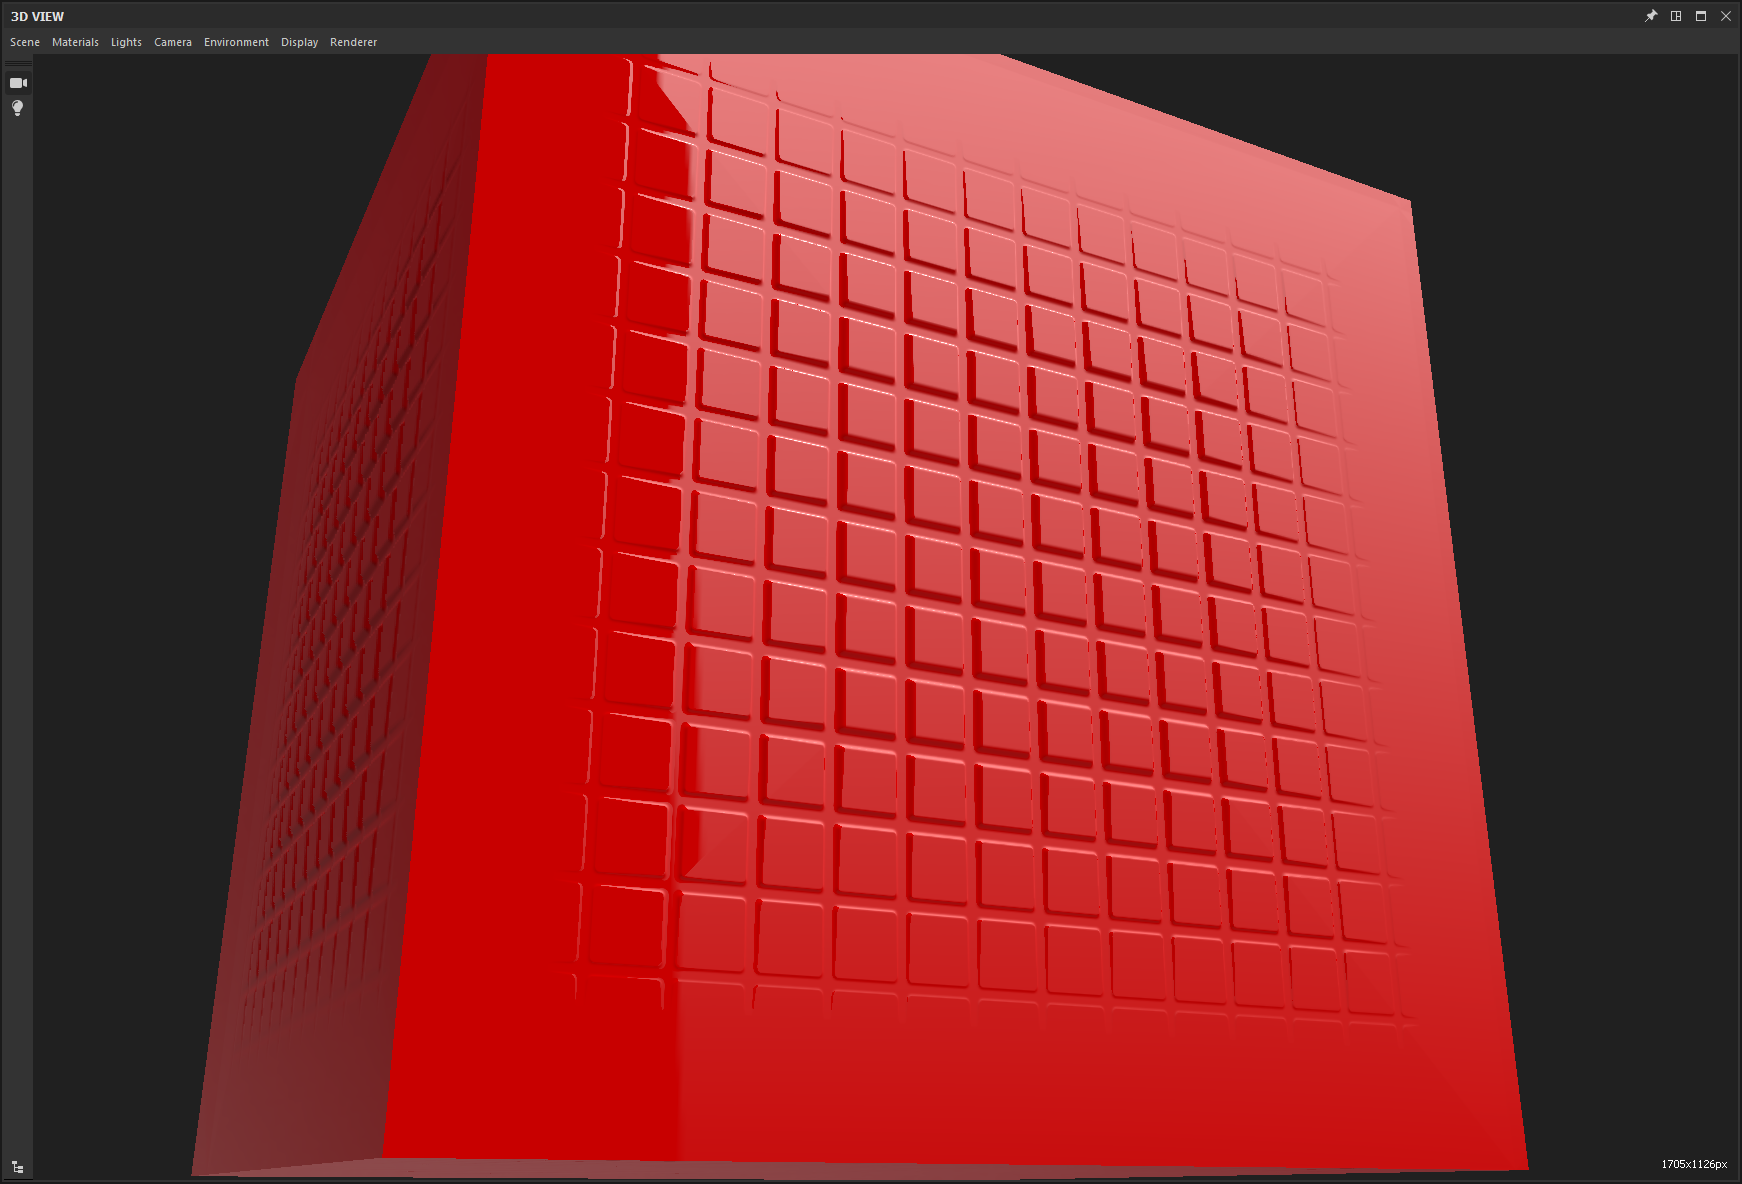 red_dots_min.png